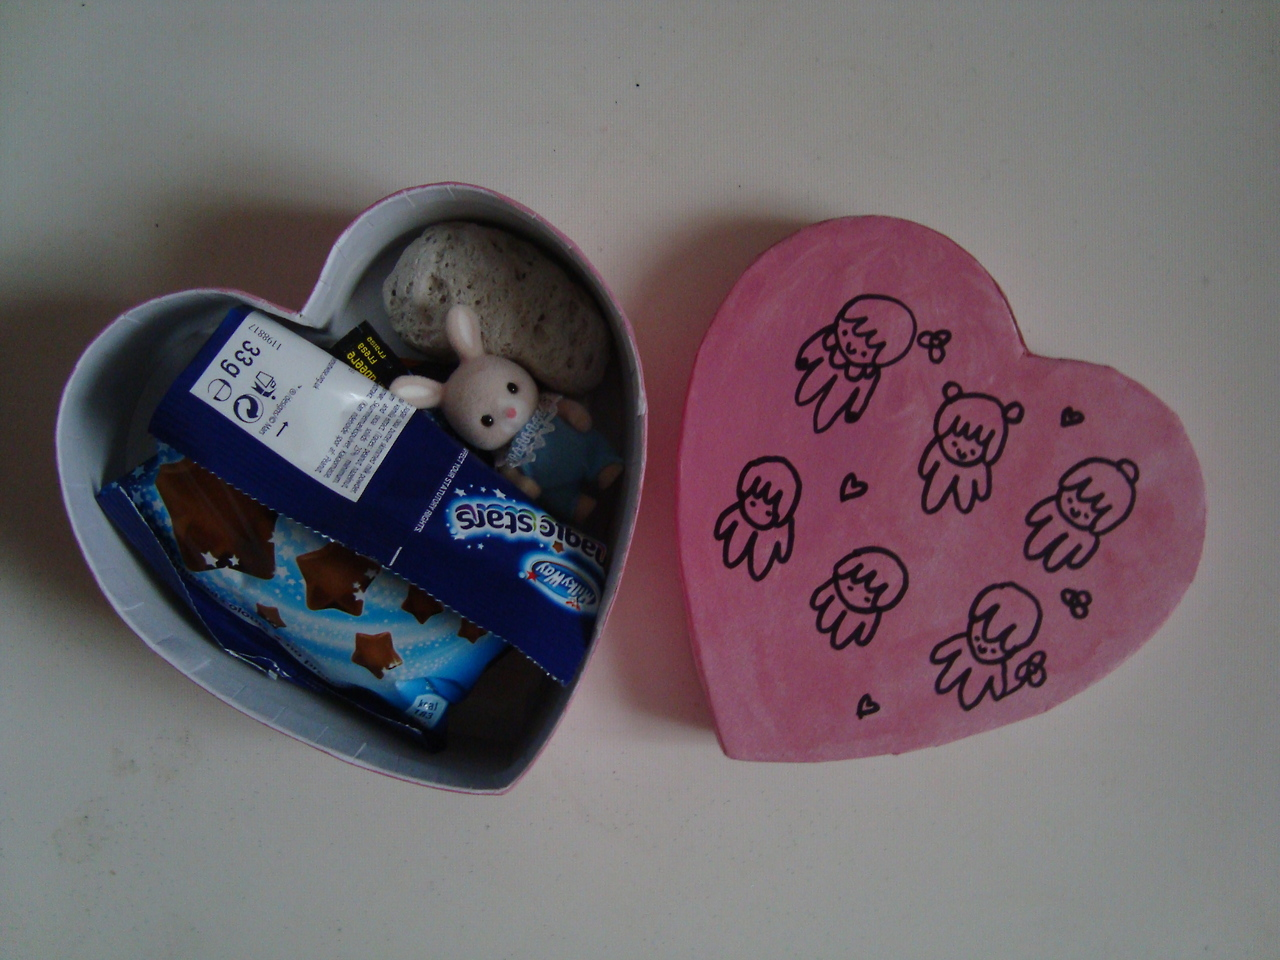 A heart shaped box lies open, showing chocolate stars and a toy bunny inside.